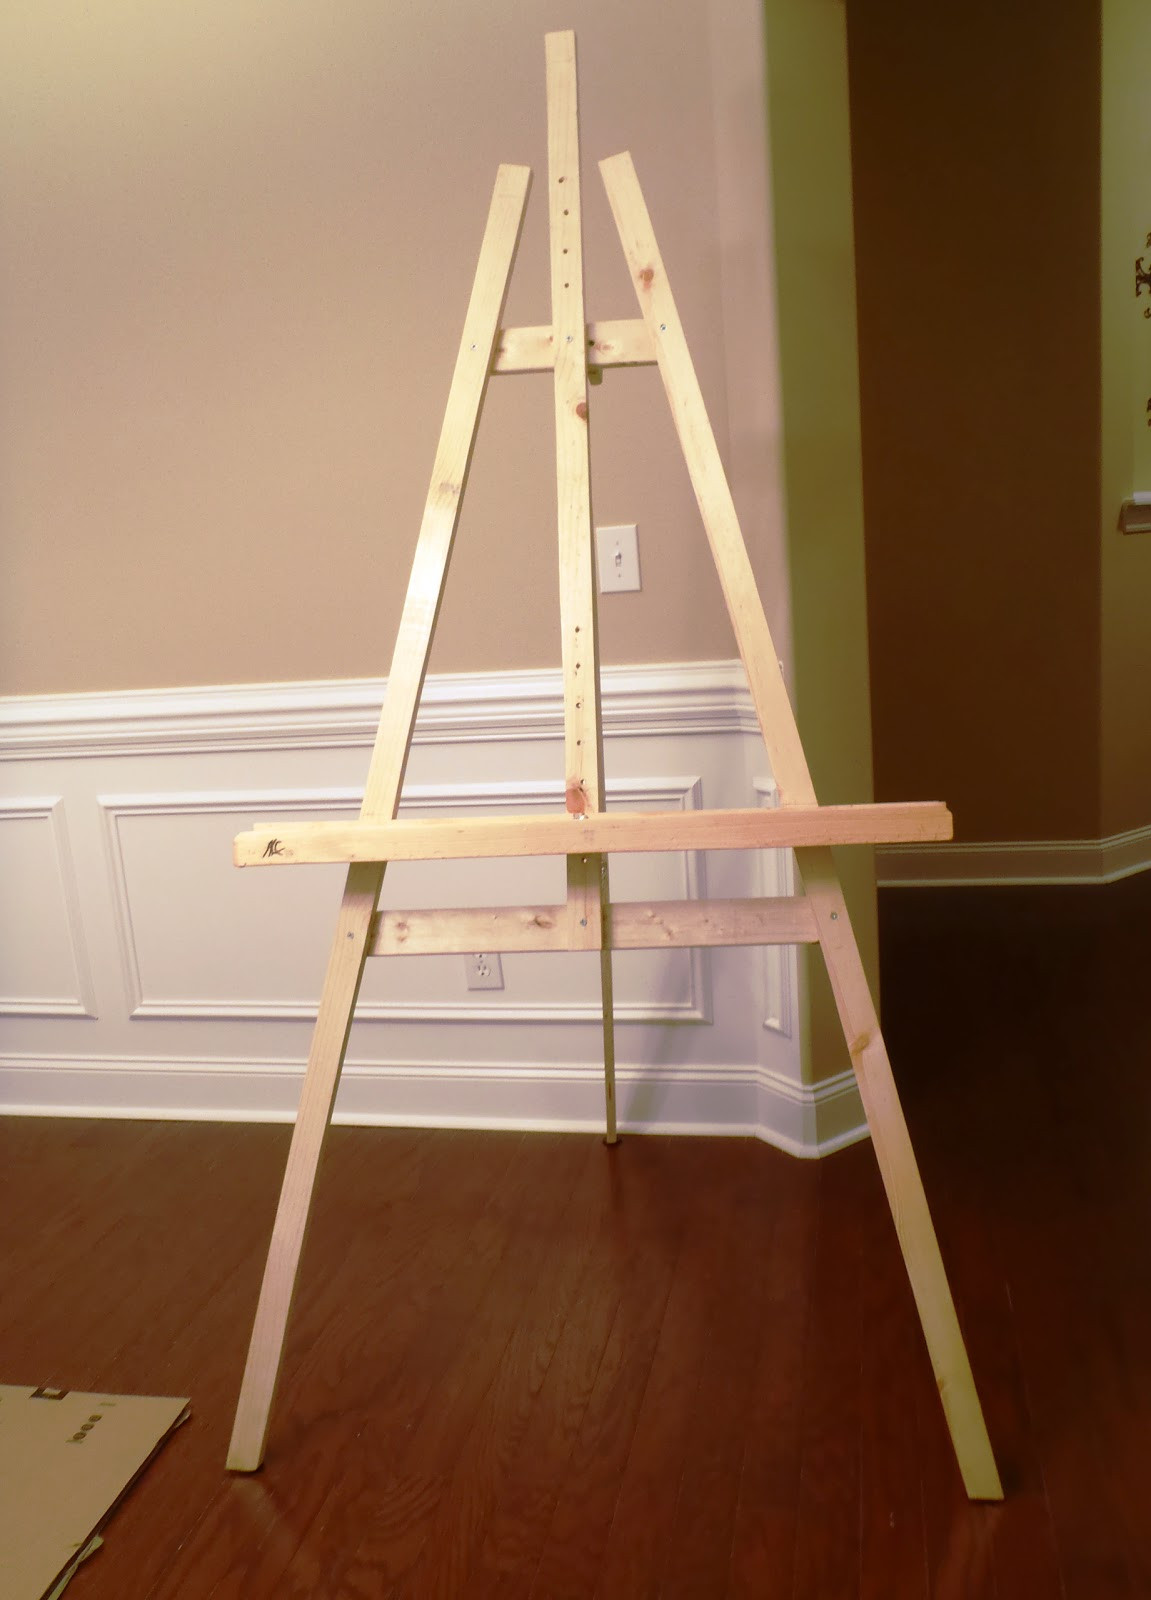 Best ideas about DIY Easel Stand . Save or Pin Lazy Liz on Less Build a Cheap Quick and Easy Artist Easel Now.